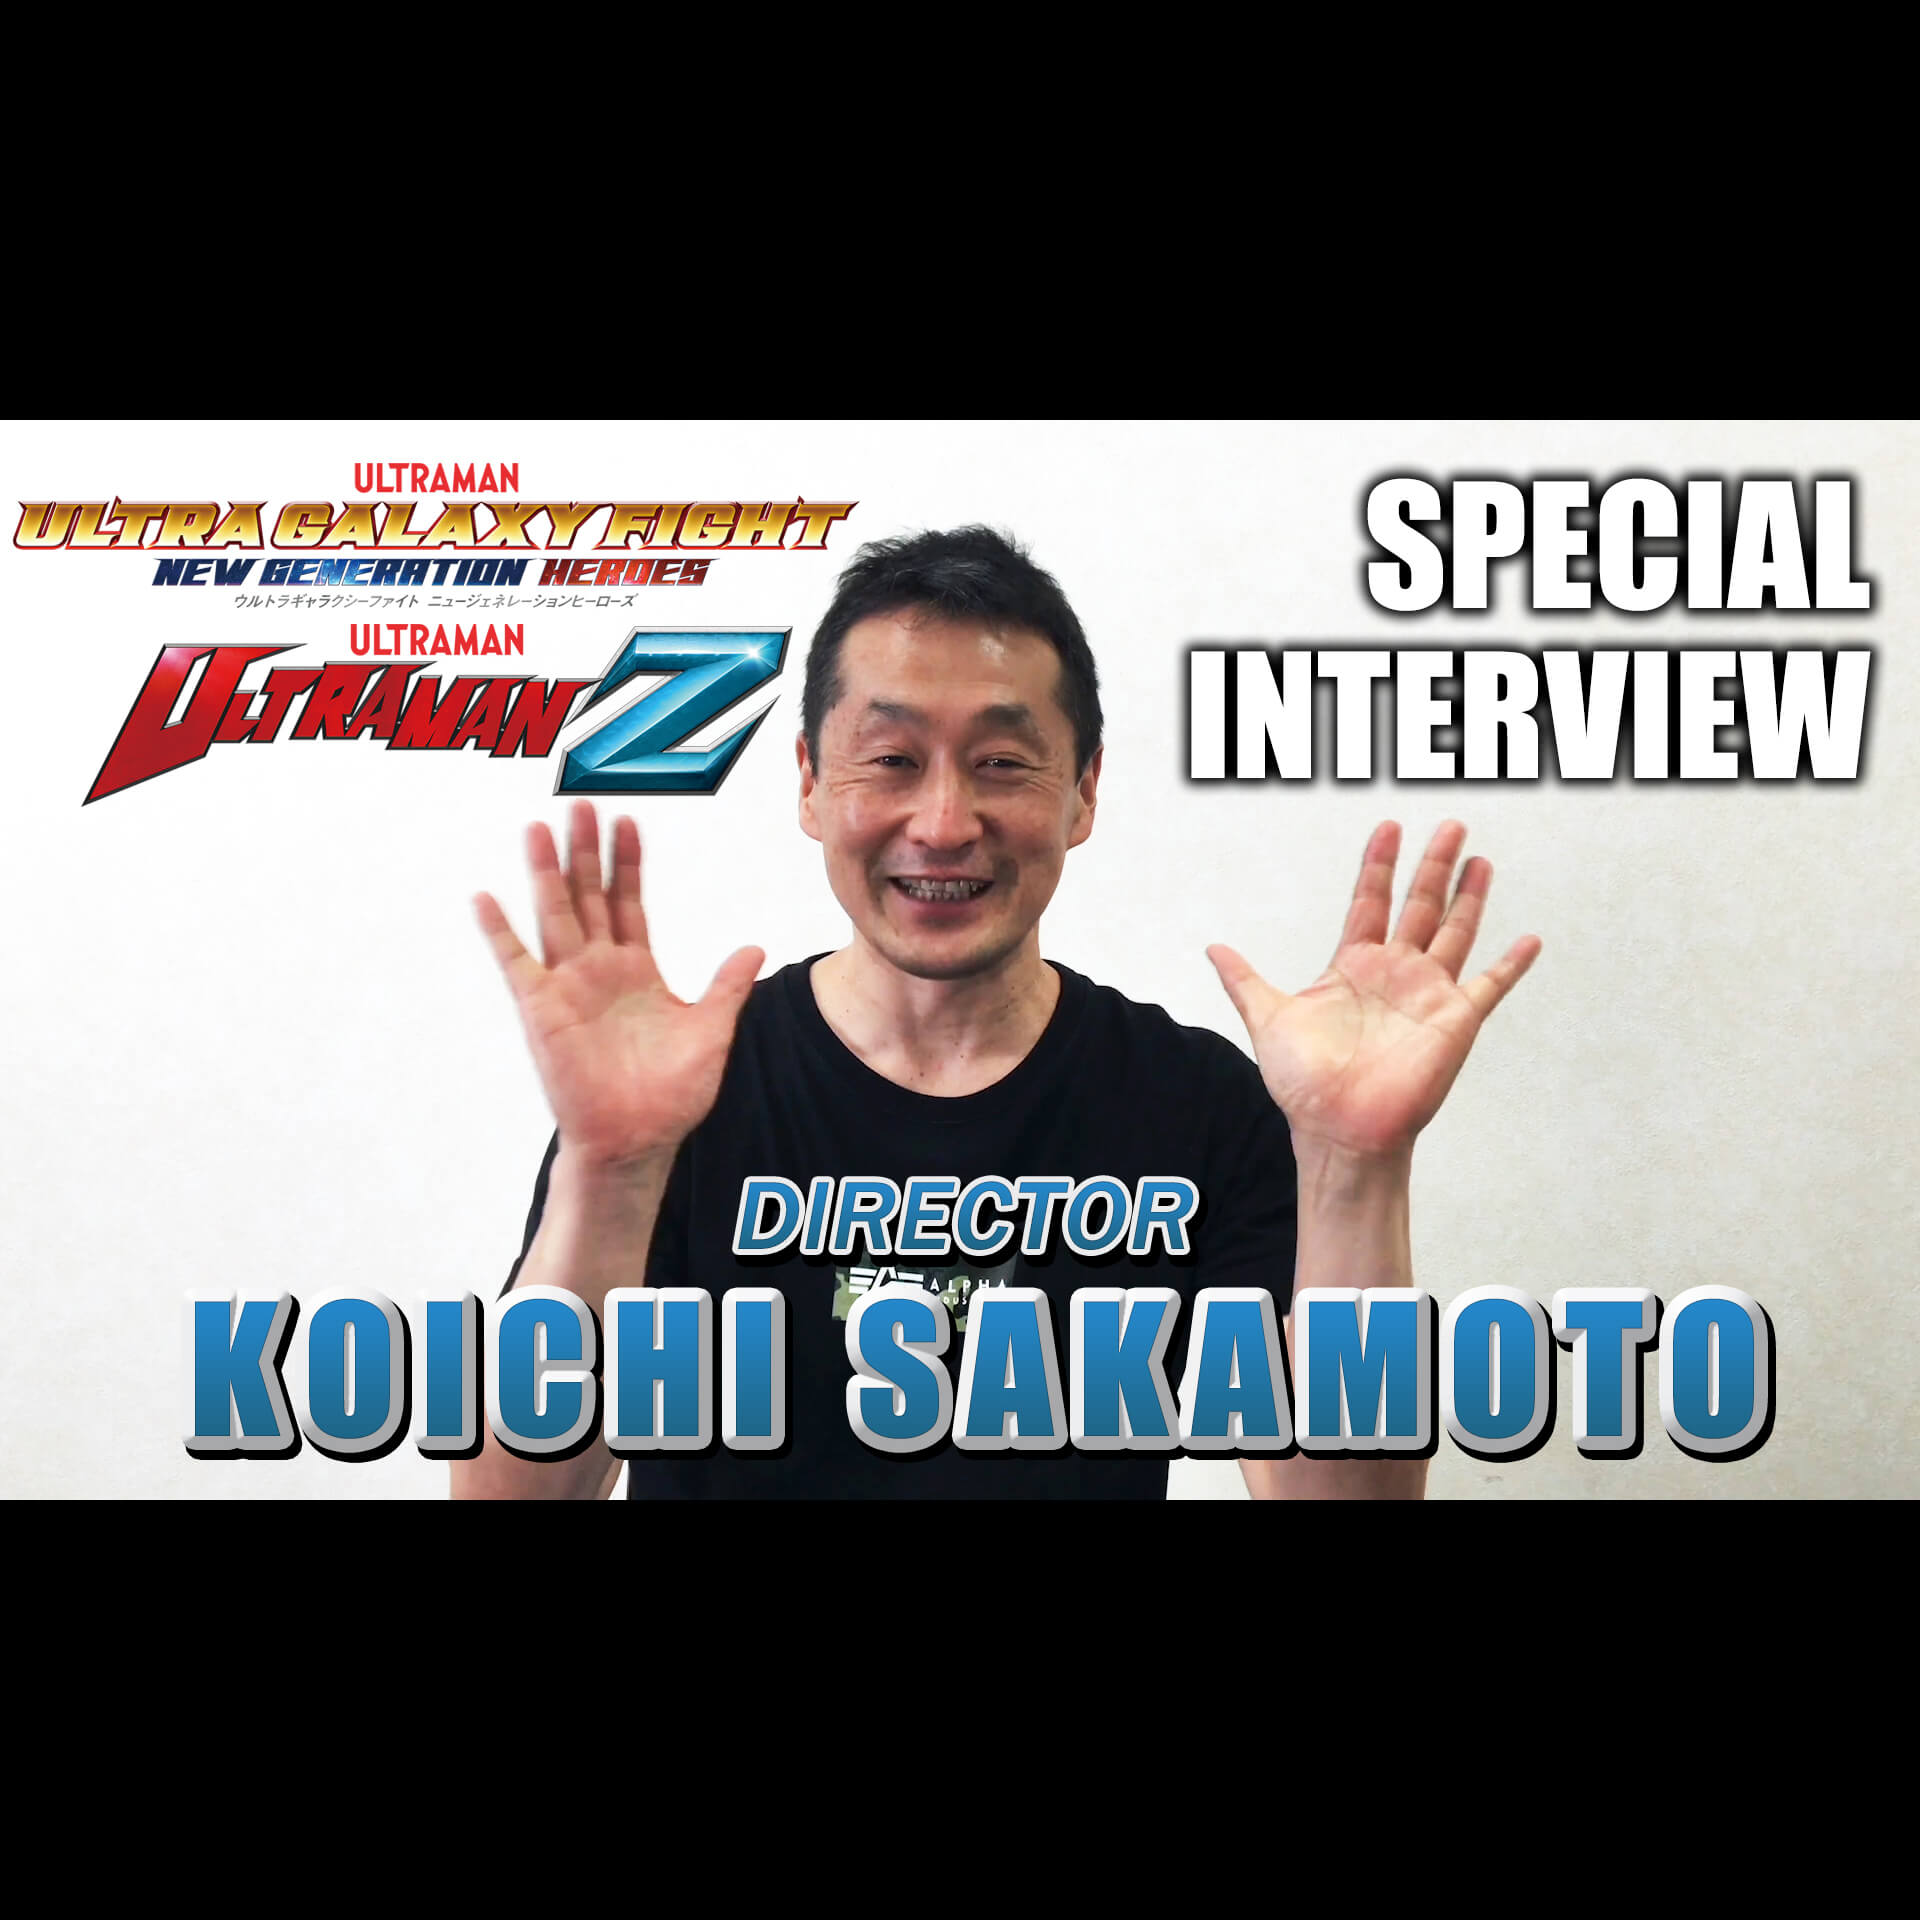 EXCLUSIVE INTERVIEW WITH DIRECTOR KOICHI SAKAMOTO